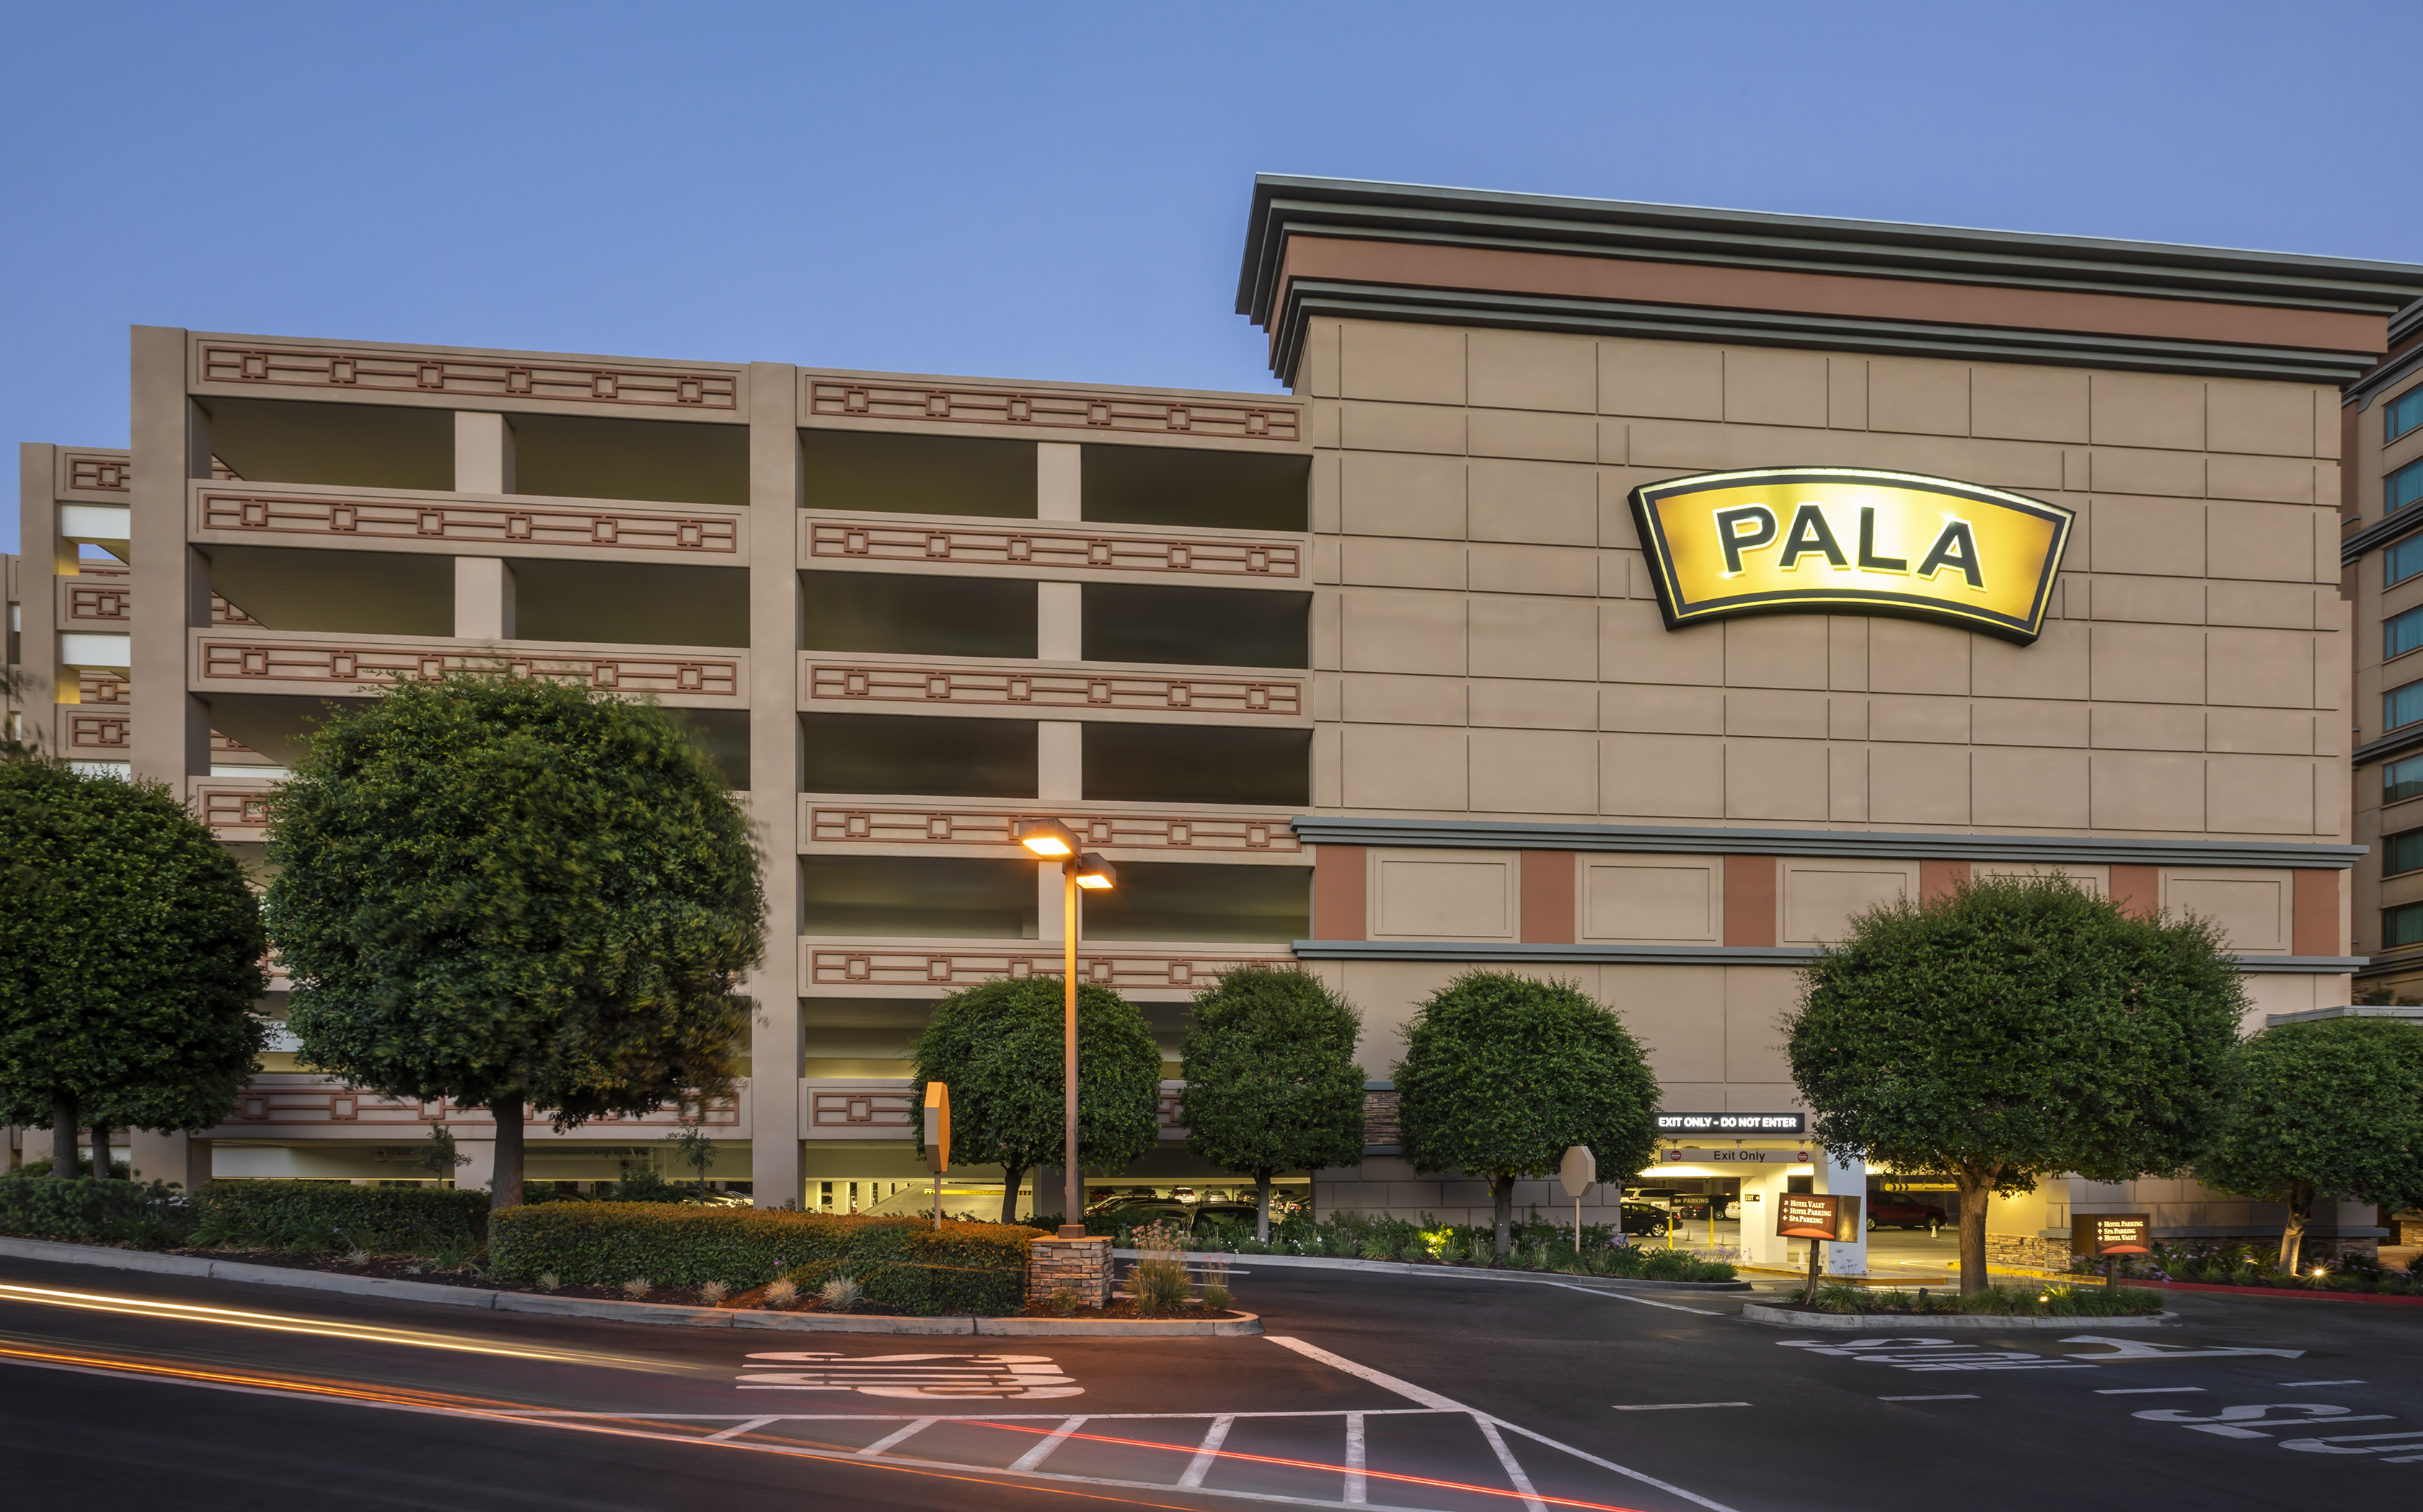 Pala Casino Spa Resort Parking Structure & Expansion